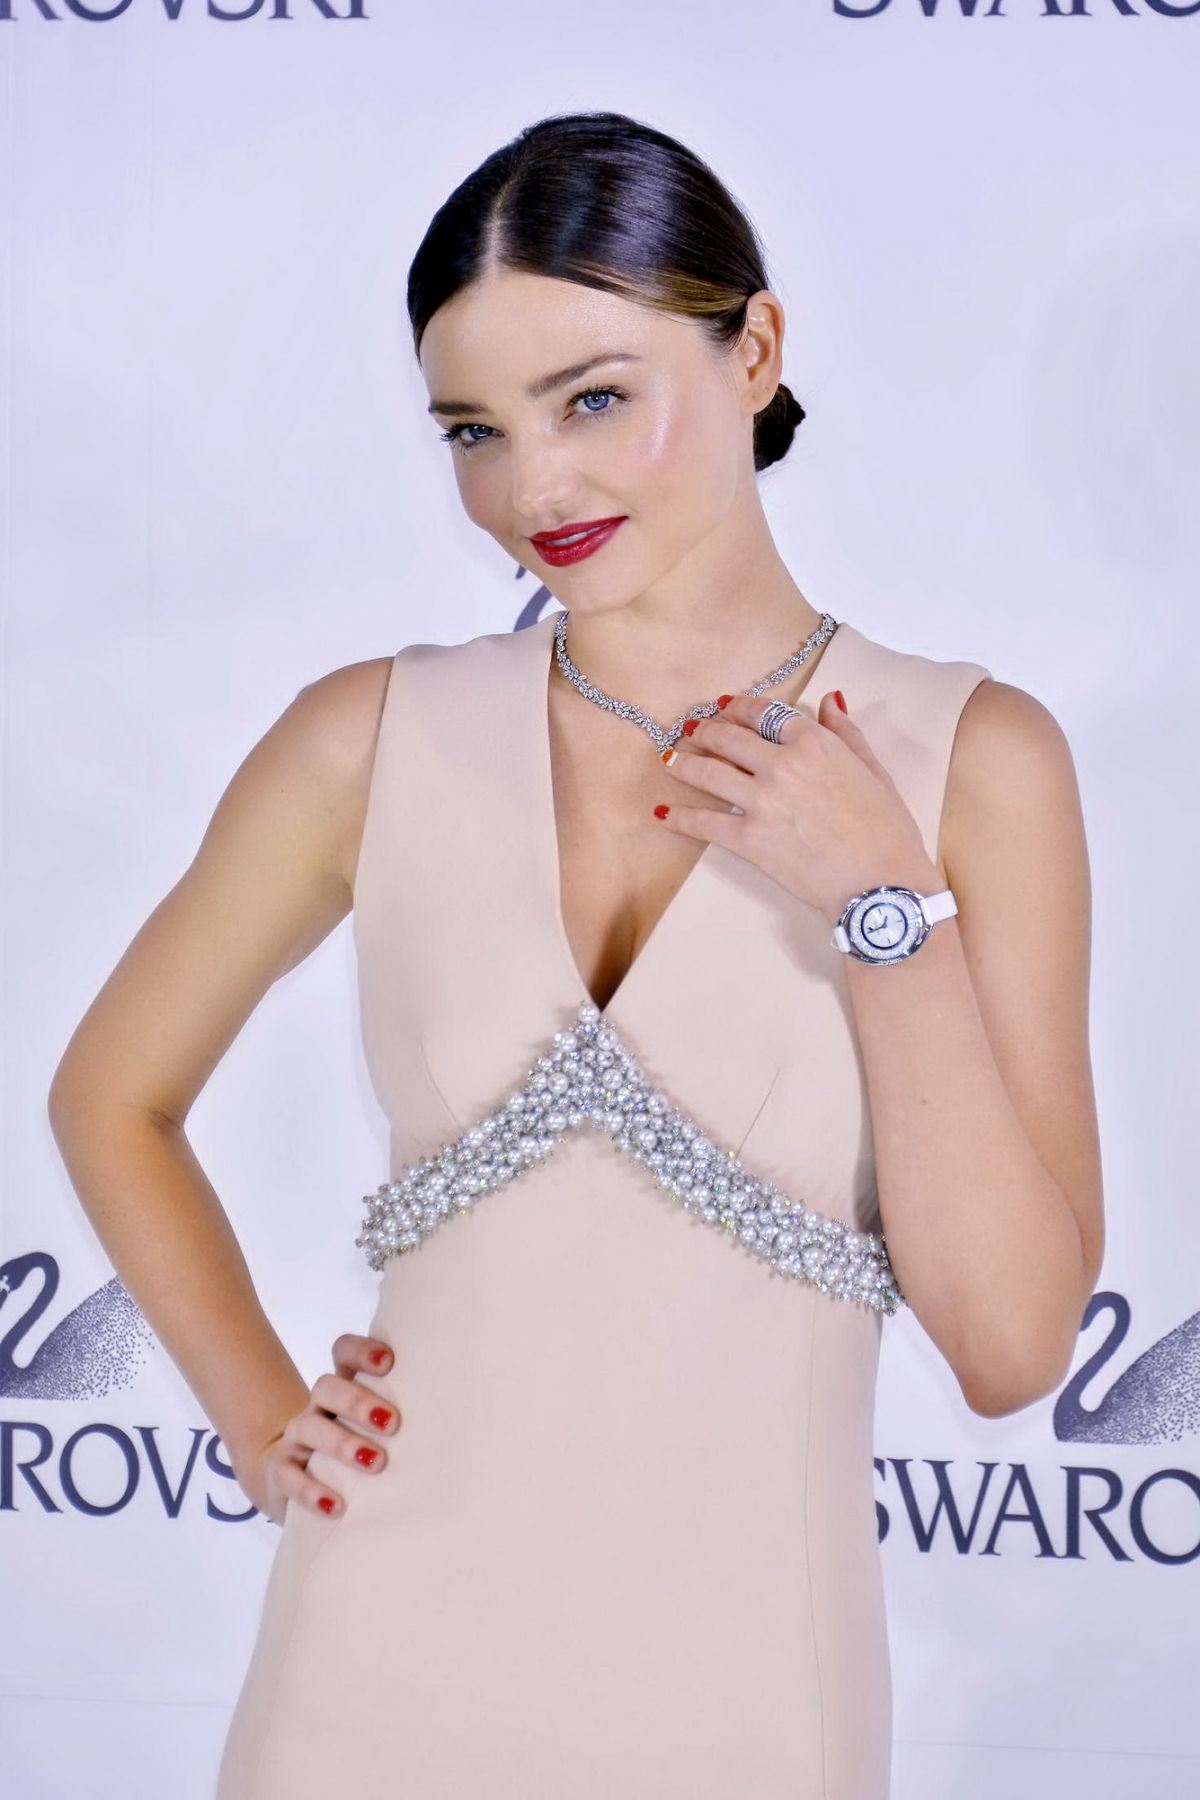 MIRANDA KERR at Swarovski Jewelry Press Conference in Tokyo 12/14/2015